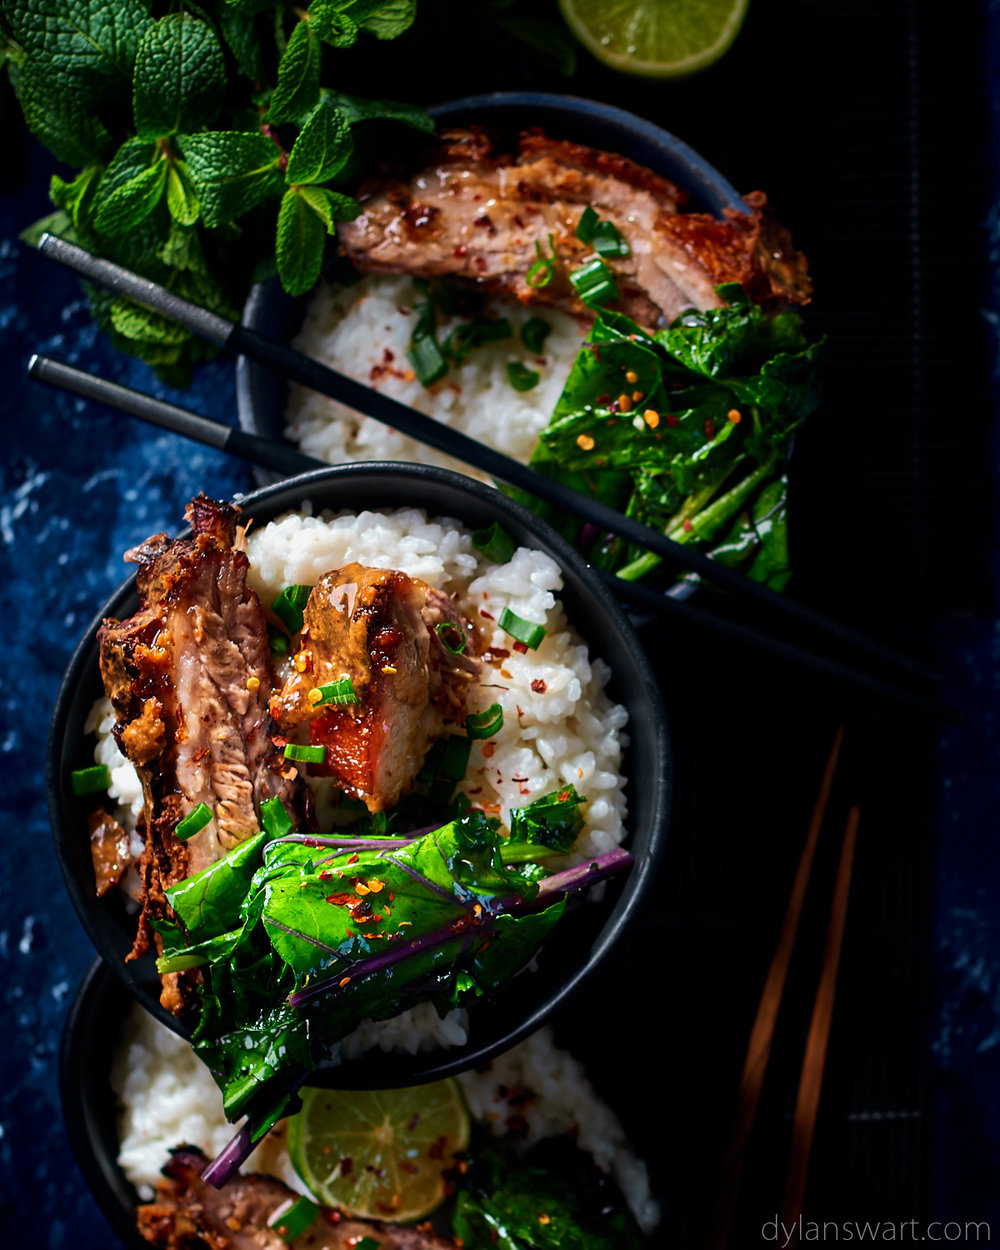 Coconut and lemongrass Asian bowls with slow-cooked pork belly and flash-fried greens